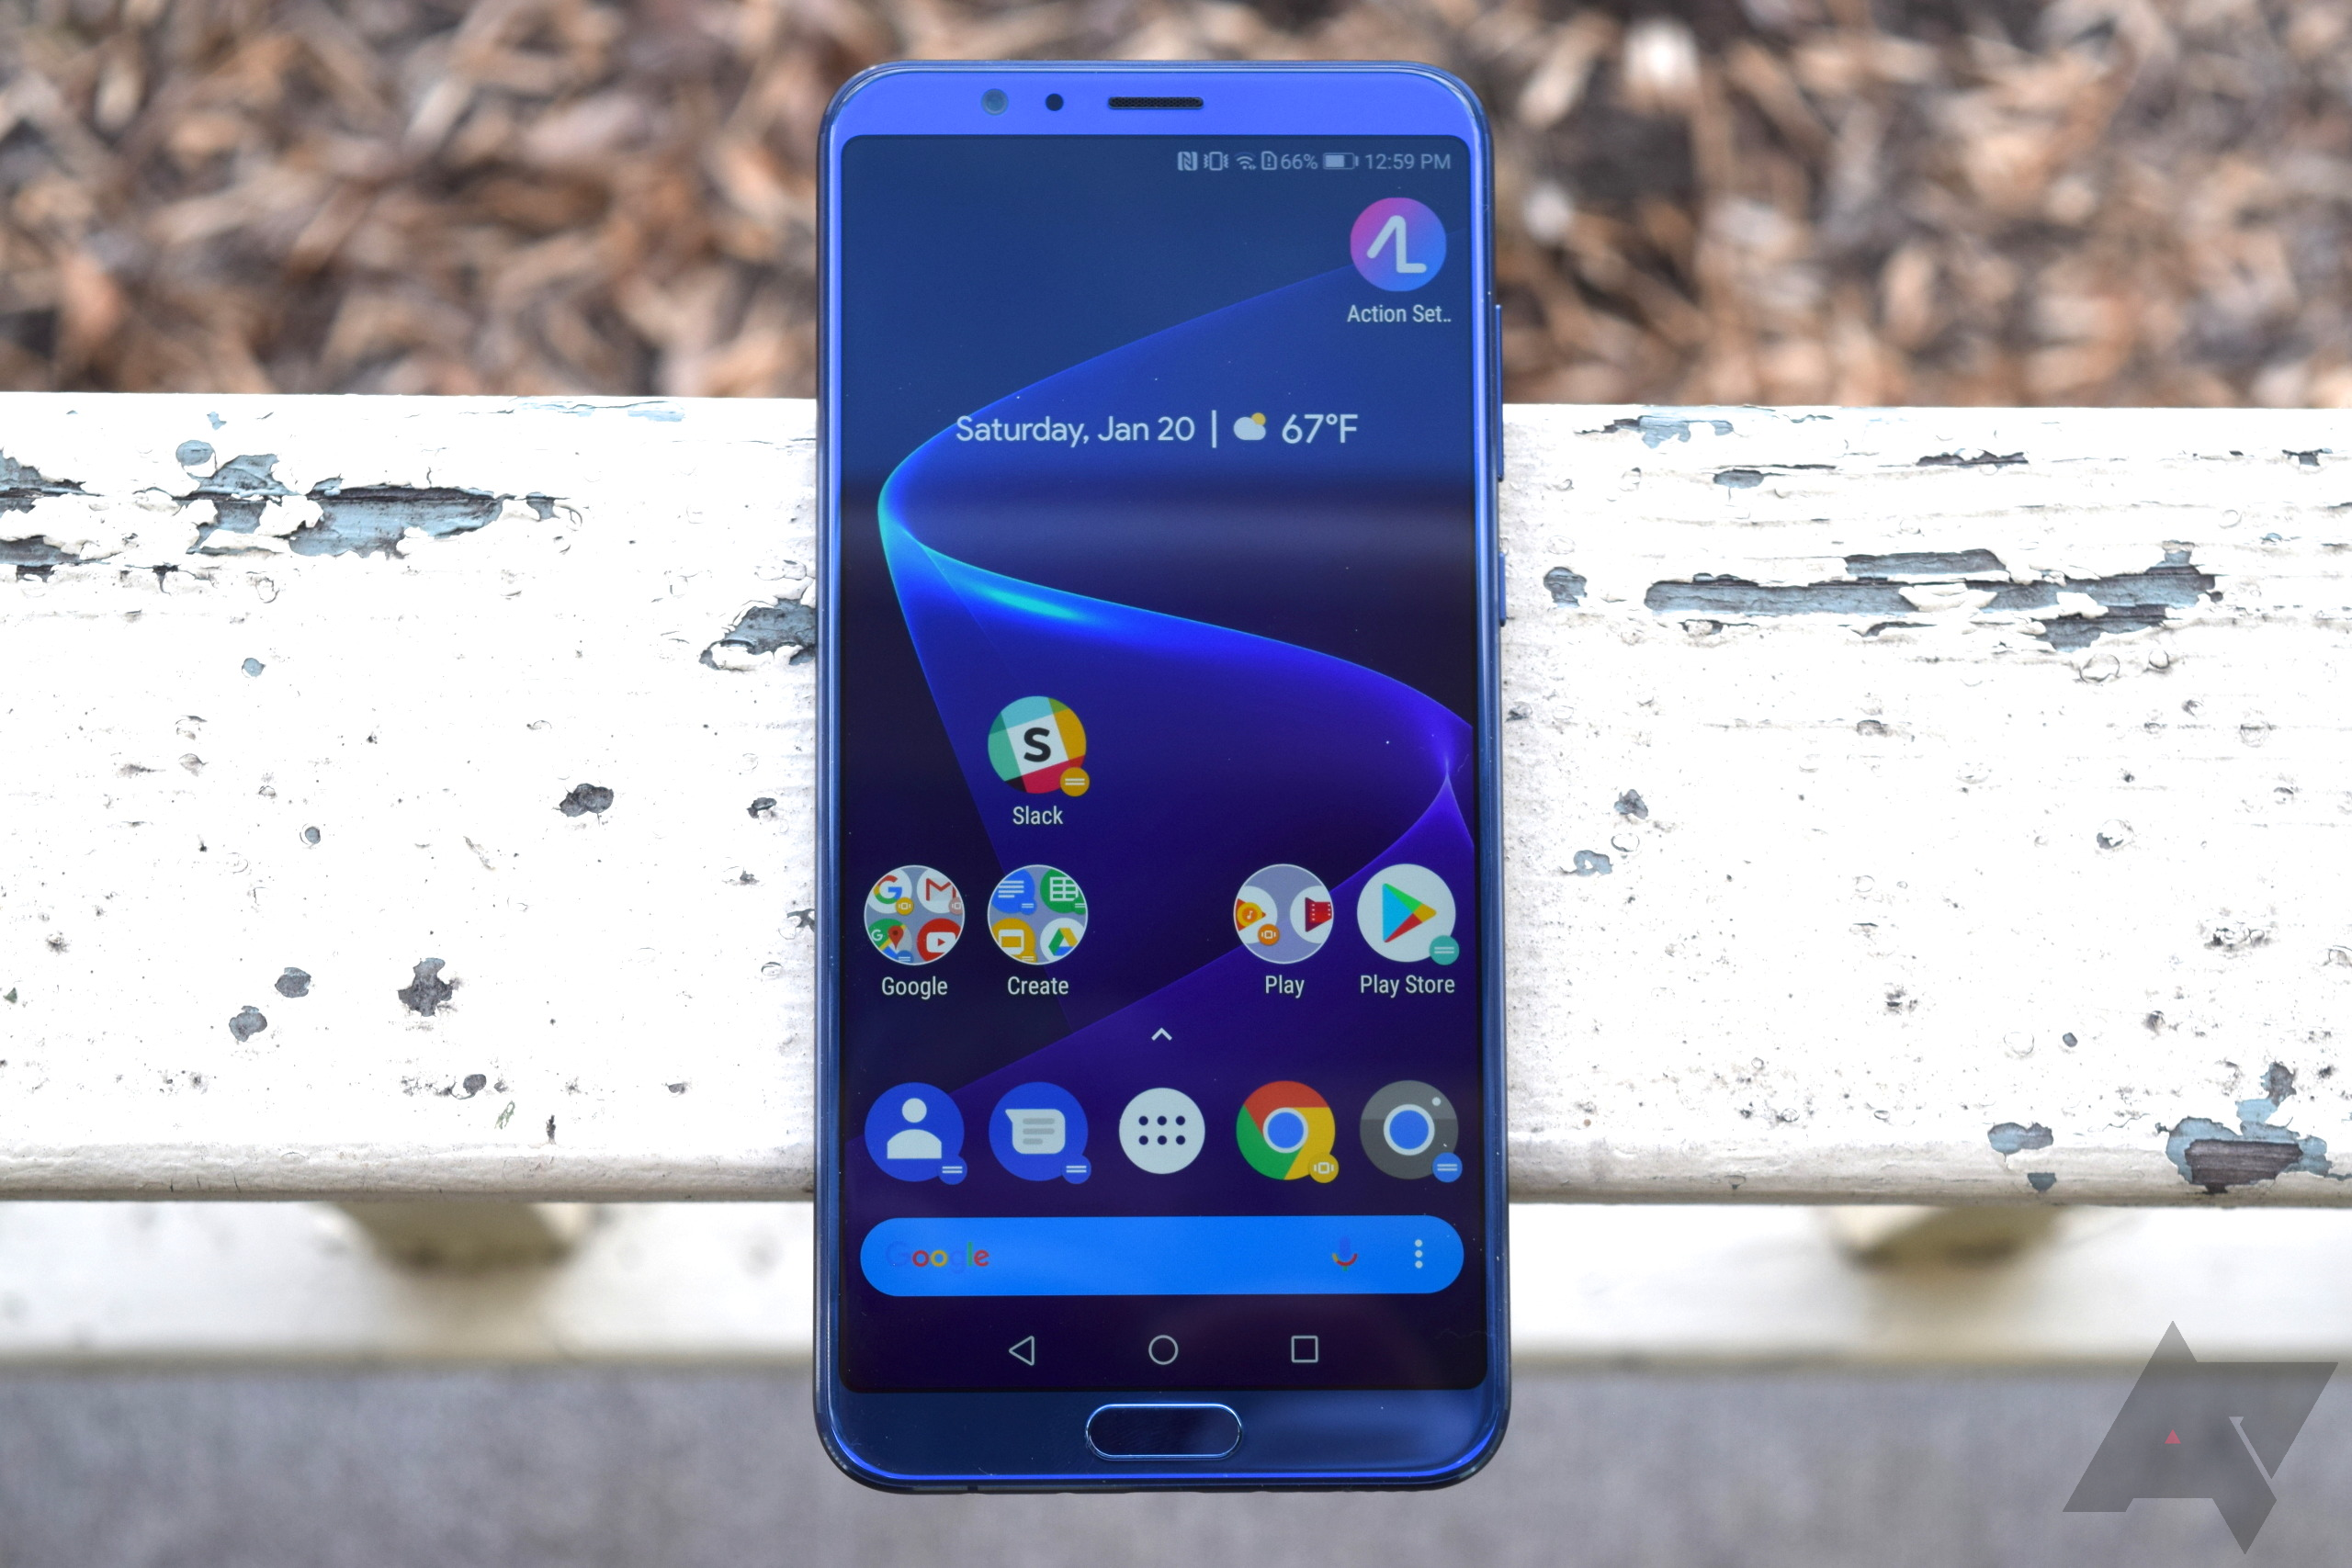 Honor View10 is down to $380 ($120 off) on Amazon and B&H